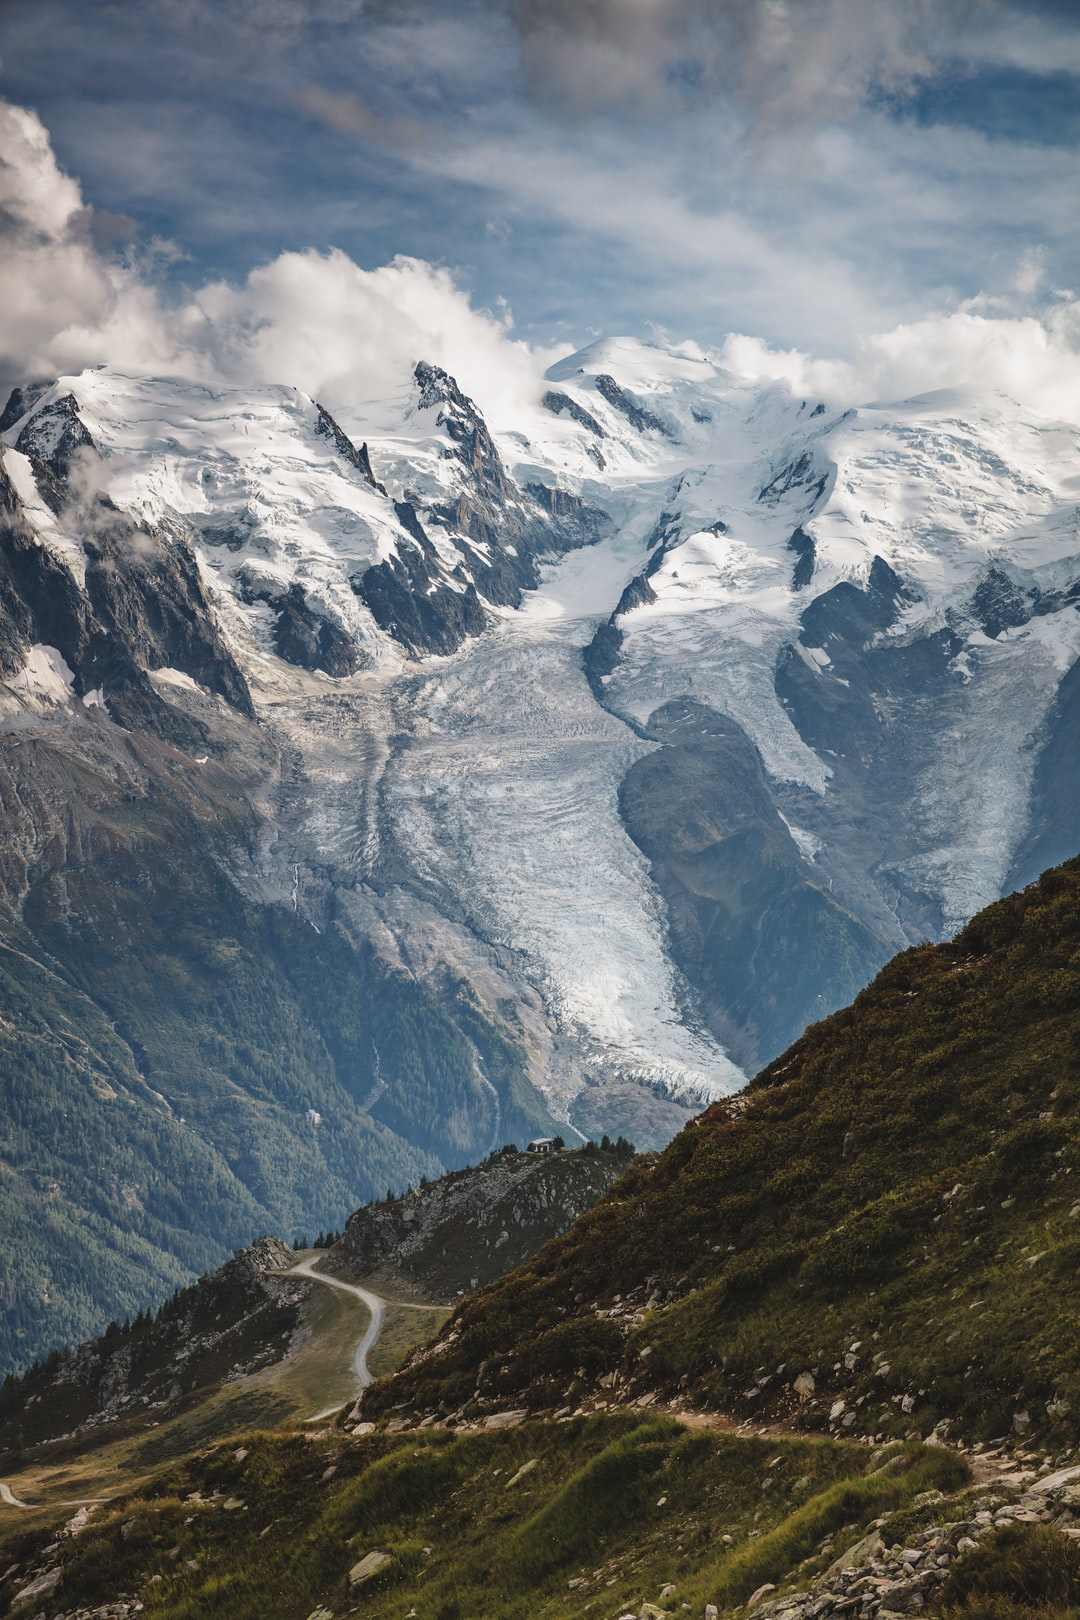 Montblanc and the glaciers